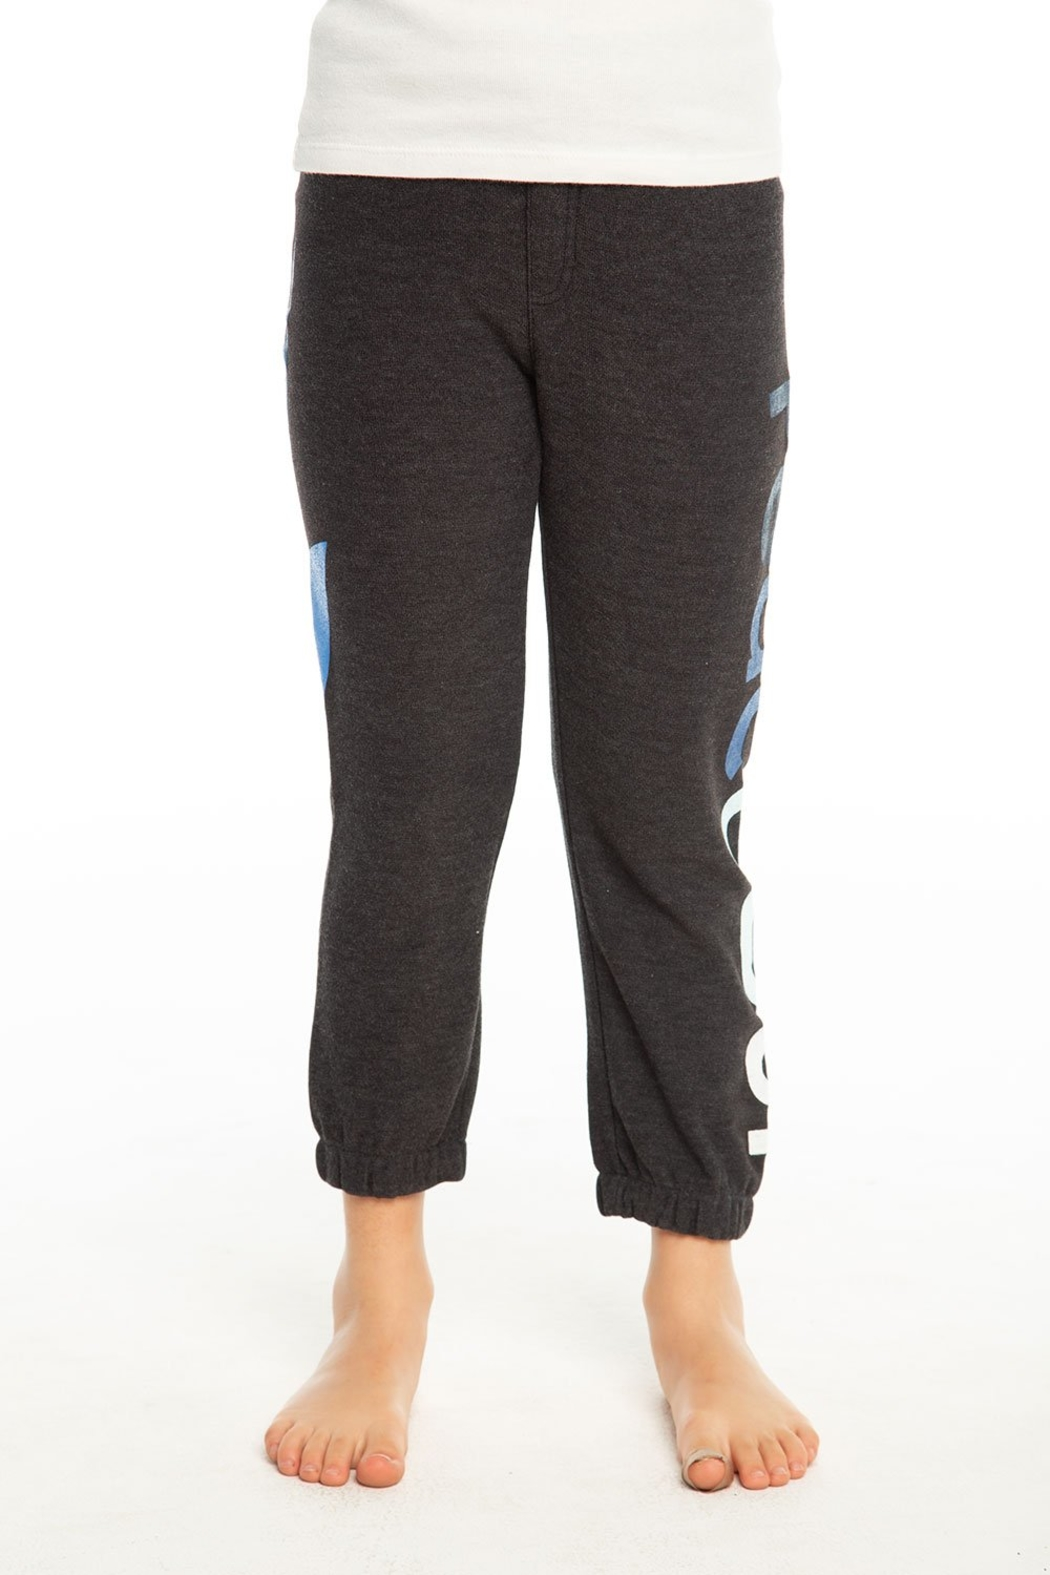 Chaser Peace out sweatpants - Side Cropped Image